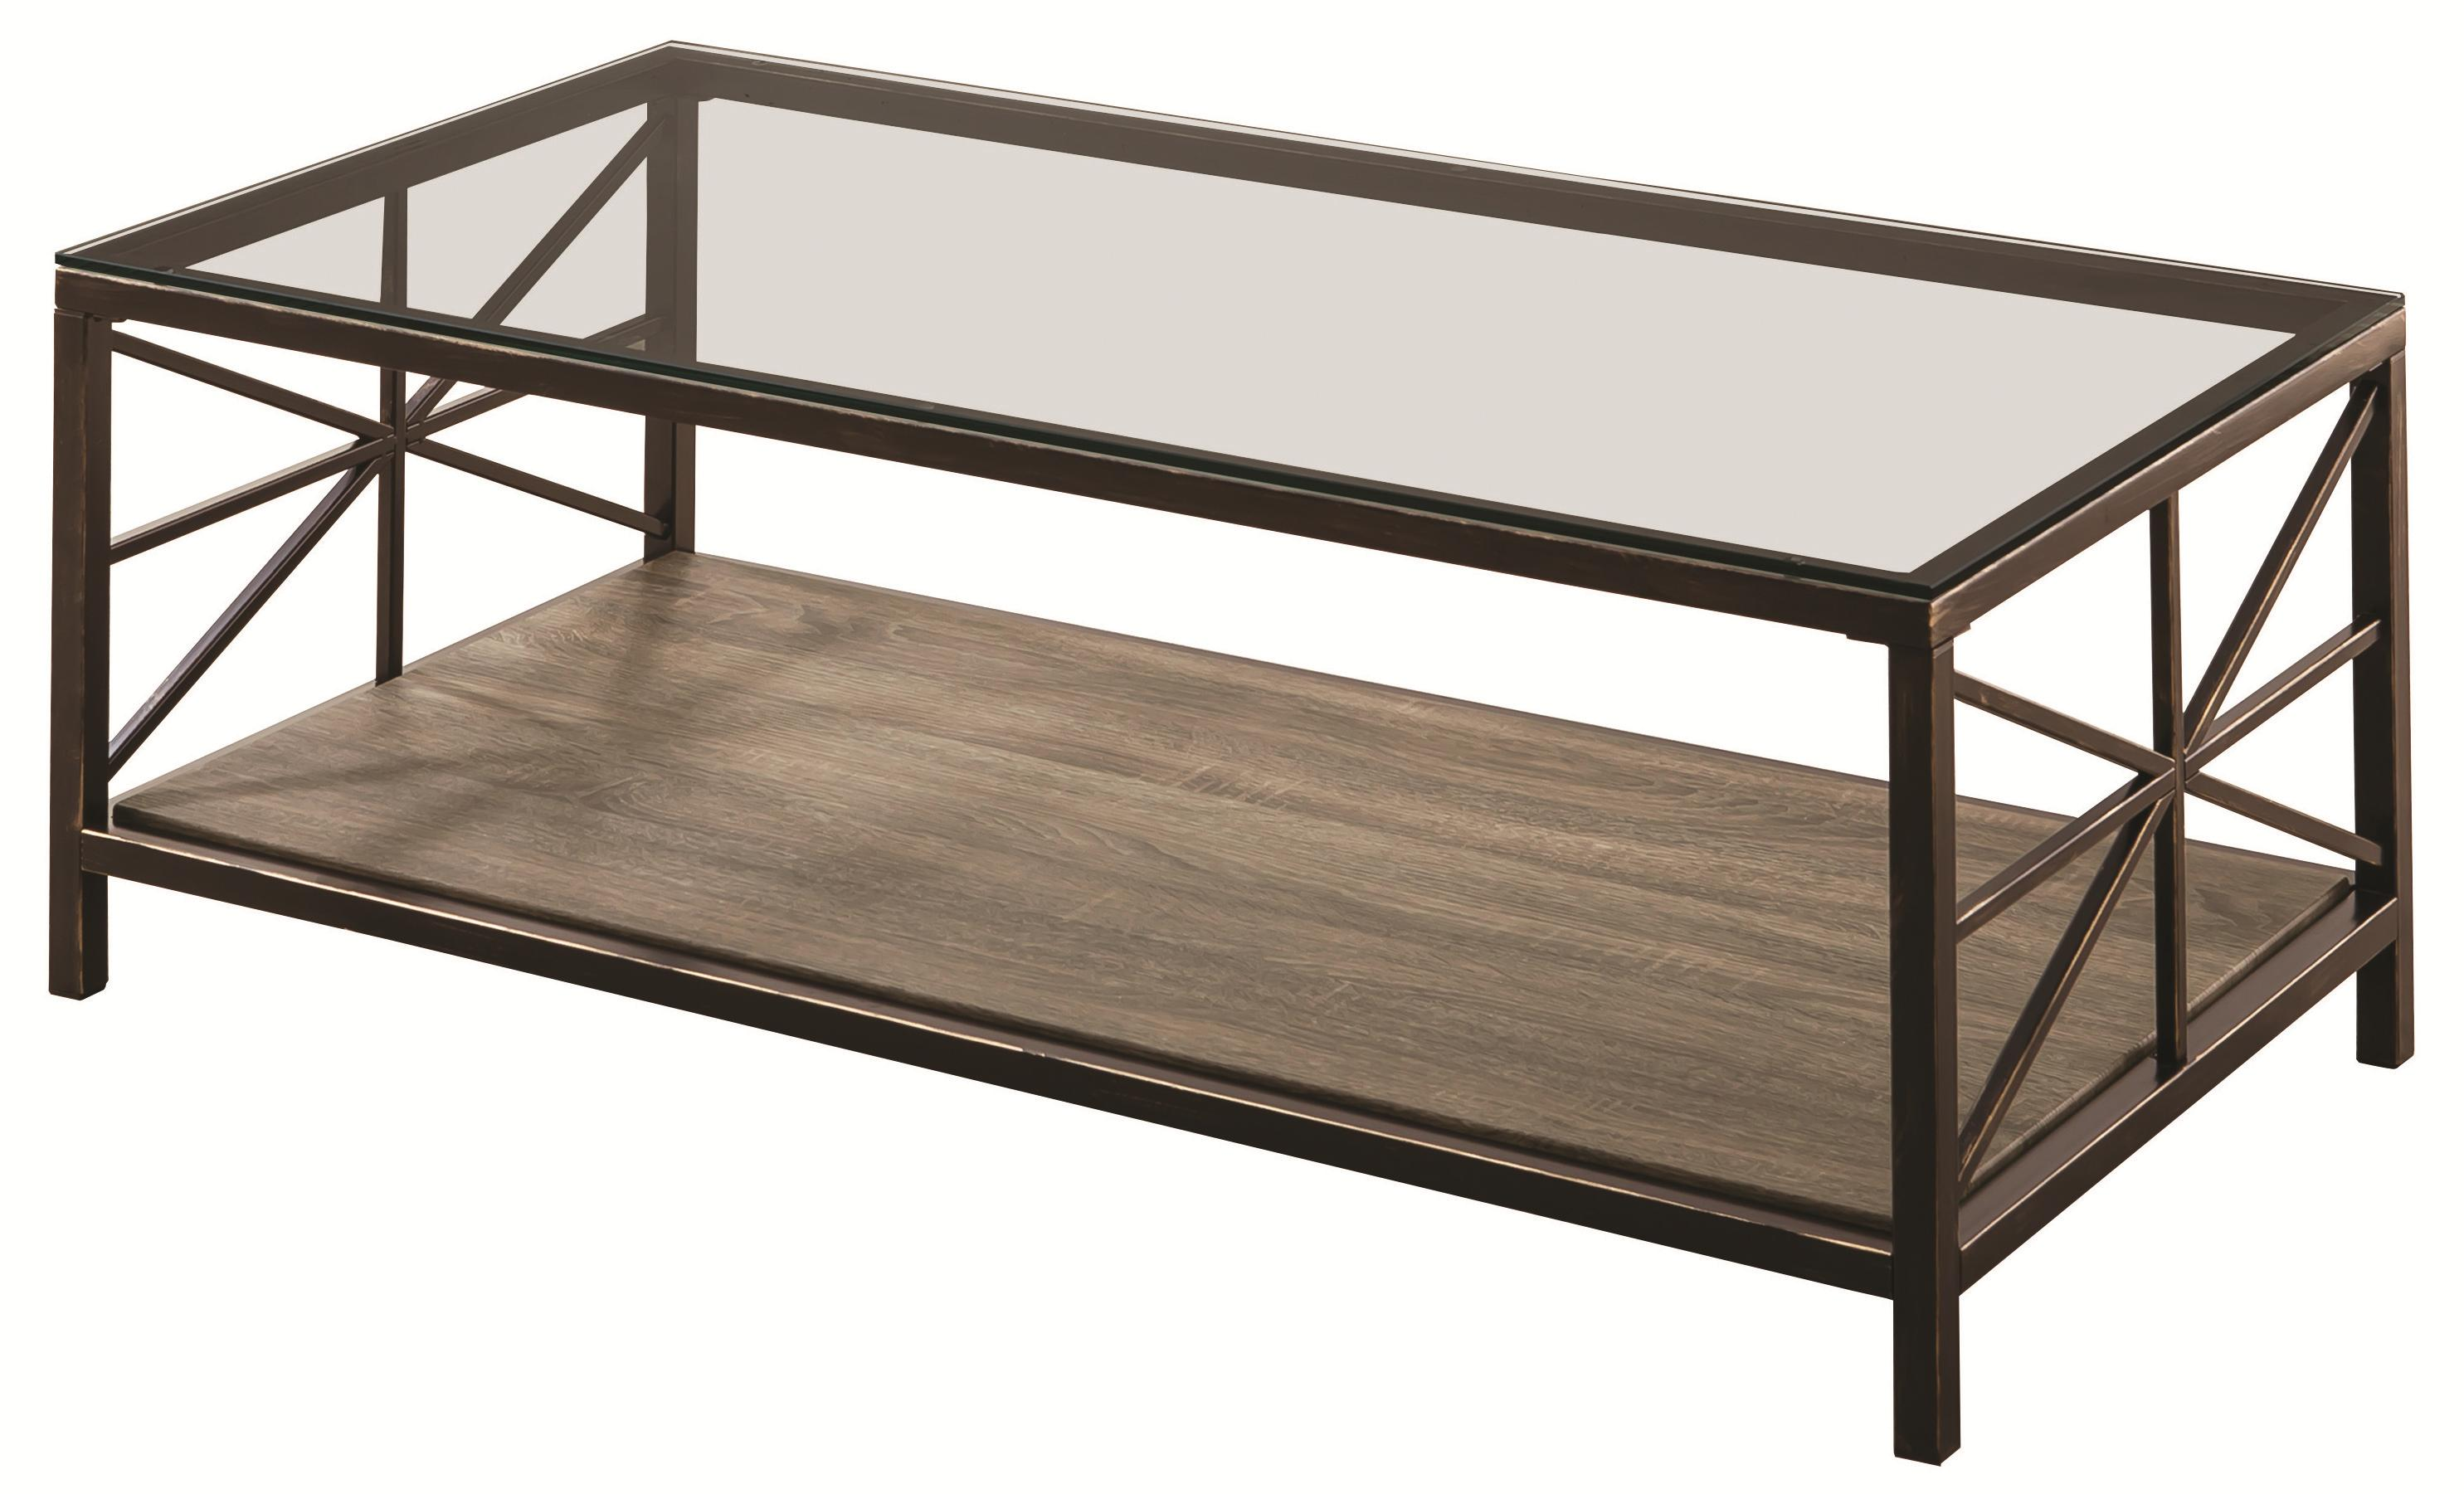 Coaster Avondale Rustic Coffee Table With Wood Shelf And